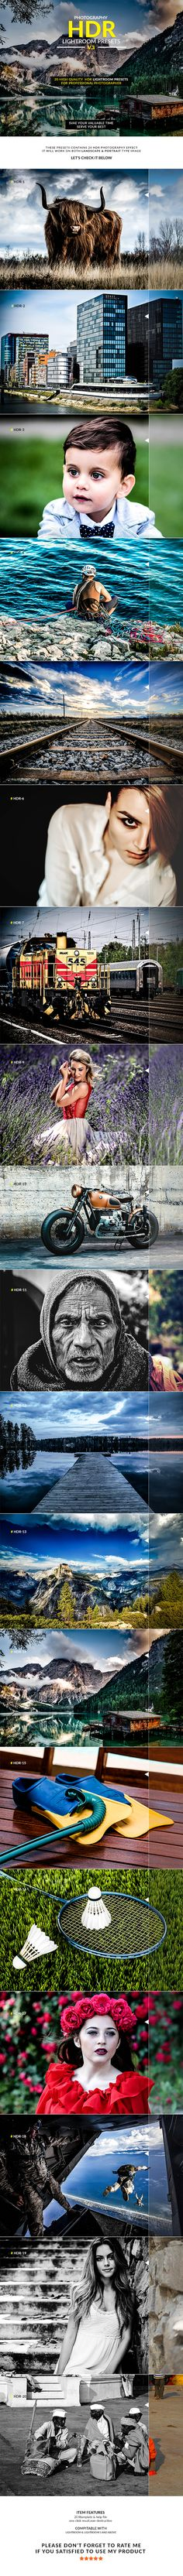 Photography HDR-(V.3) Lightroom Presets — LRTemplate #photographer #black & white • Available here → https://graphicriver.net/item/photography-hdrv3-lightroom-presets/17852935?ref=pxcr